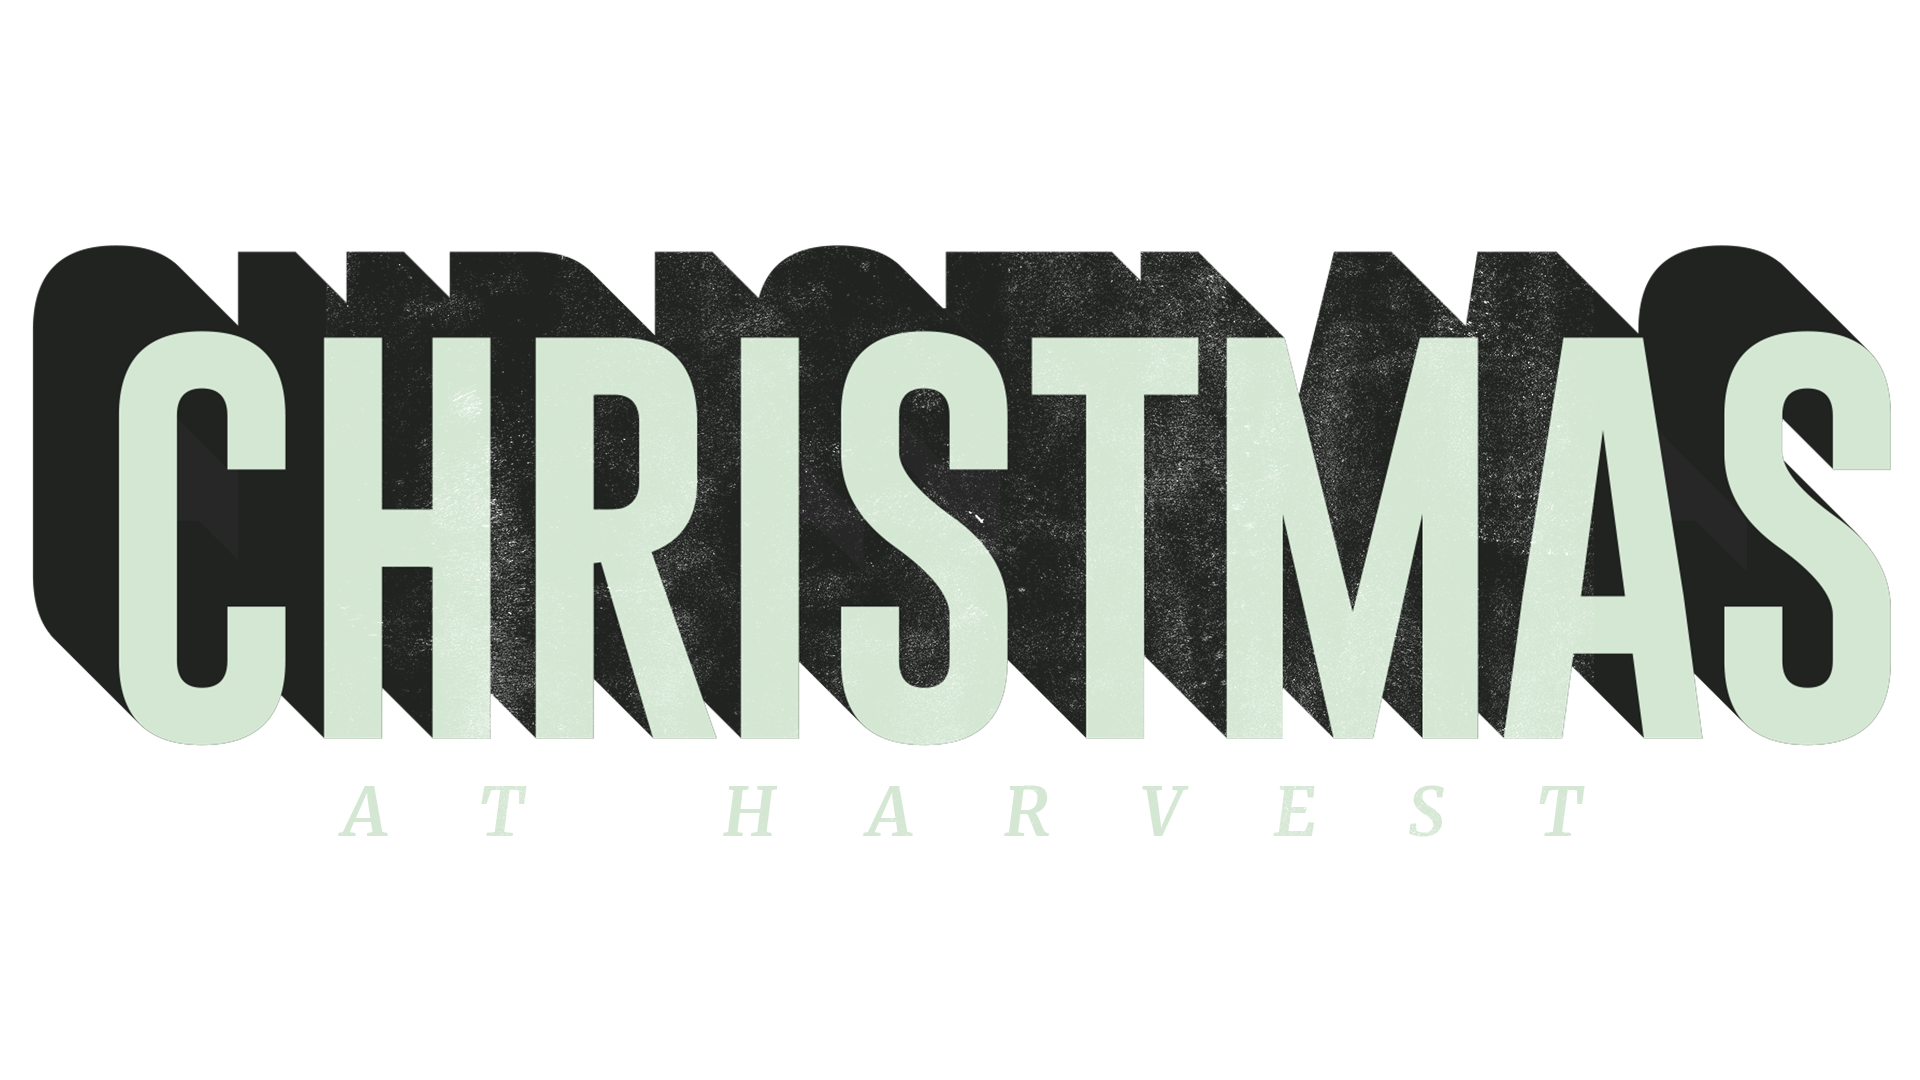 Join us for our Christmas Eve Services at 3:30pm & 5:00pm in Carmel and 5:00pm in Anderson